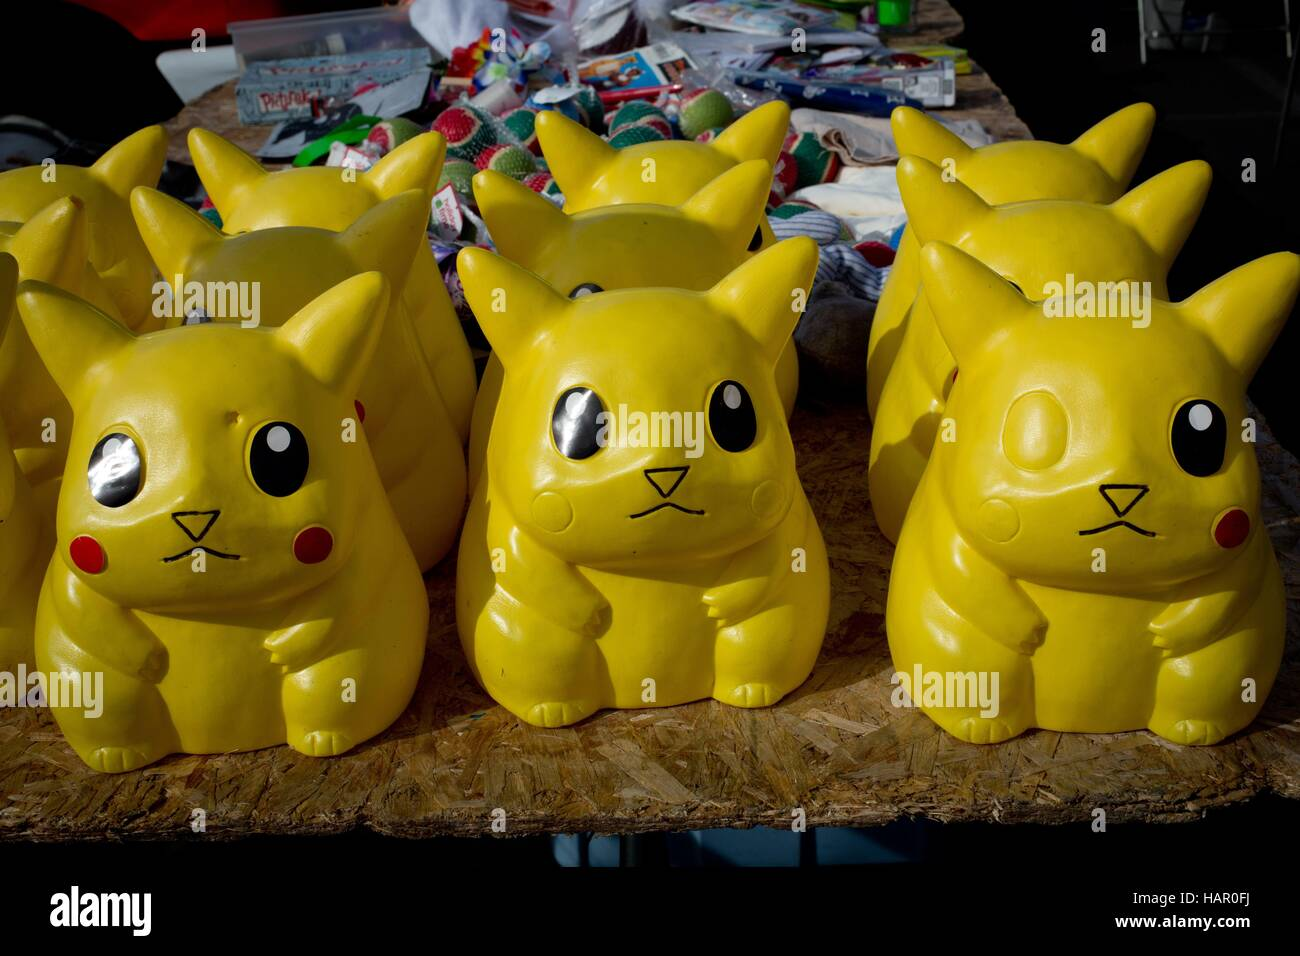 Pokemon toys at Kobey's Swap Meet at the Sports Arena, in